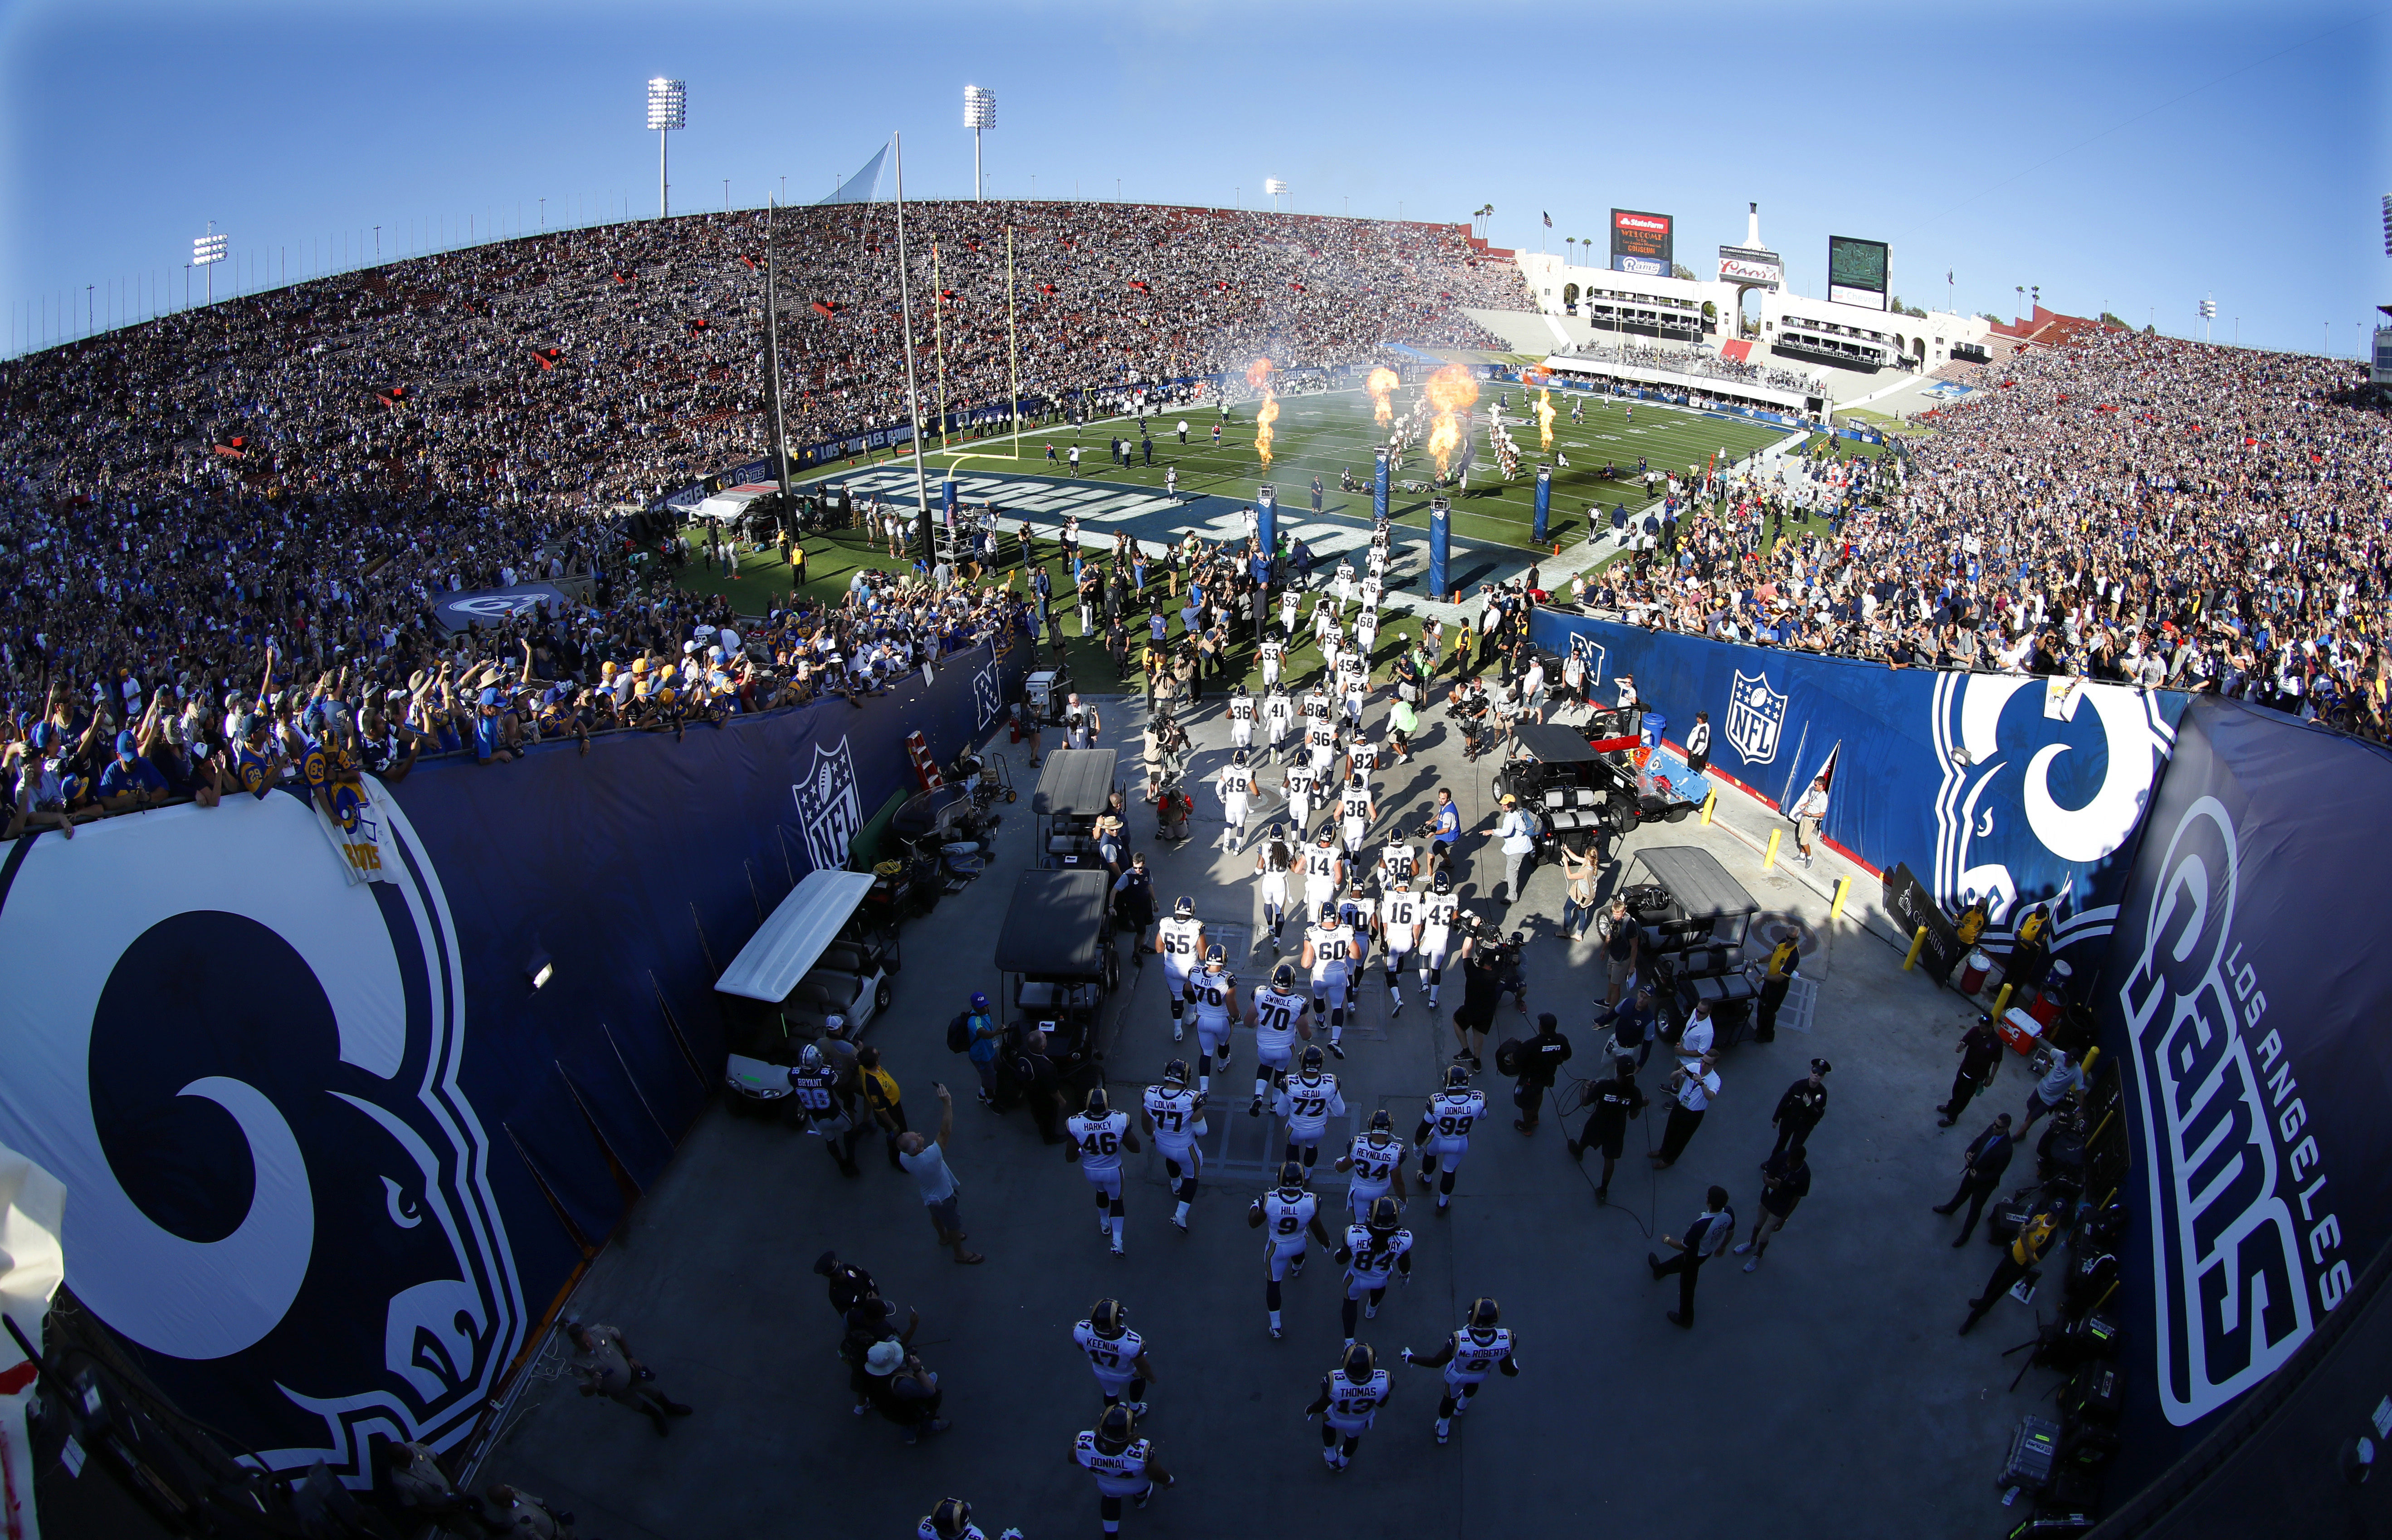 FILE - In this Aug. 13, 2016, file photo, The Los Angeles Rams take the field at Los Angeles Memorial Coliseum for a preseason NFL football game against the Dallas Cowboys in Los Angeles. The nations second-largest city has waited nearly 22 years for Sund